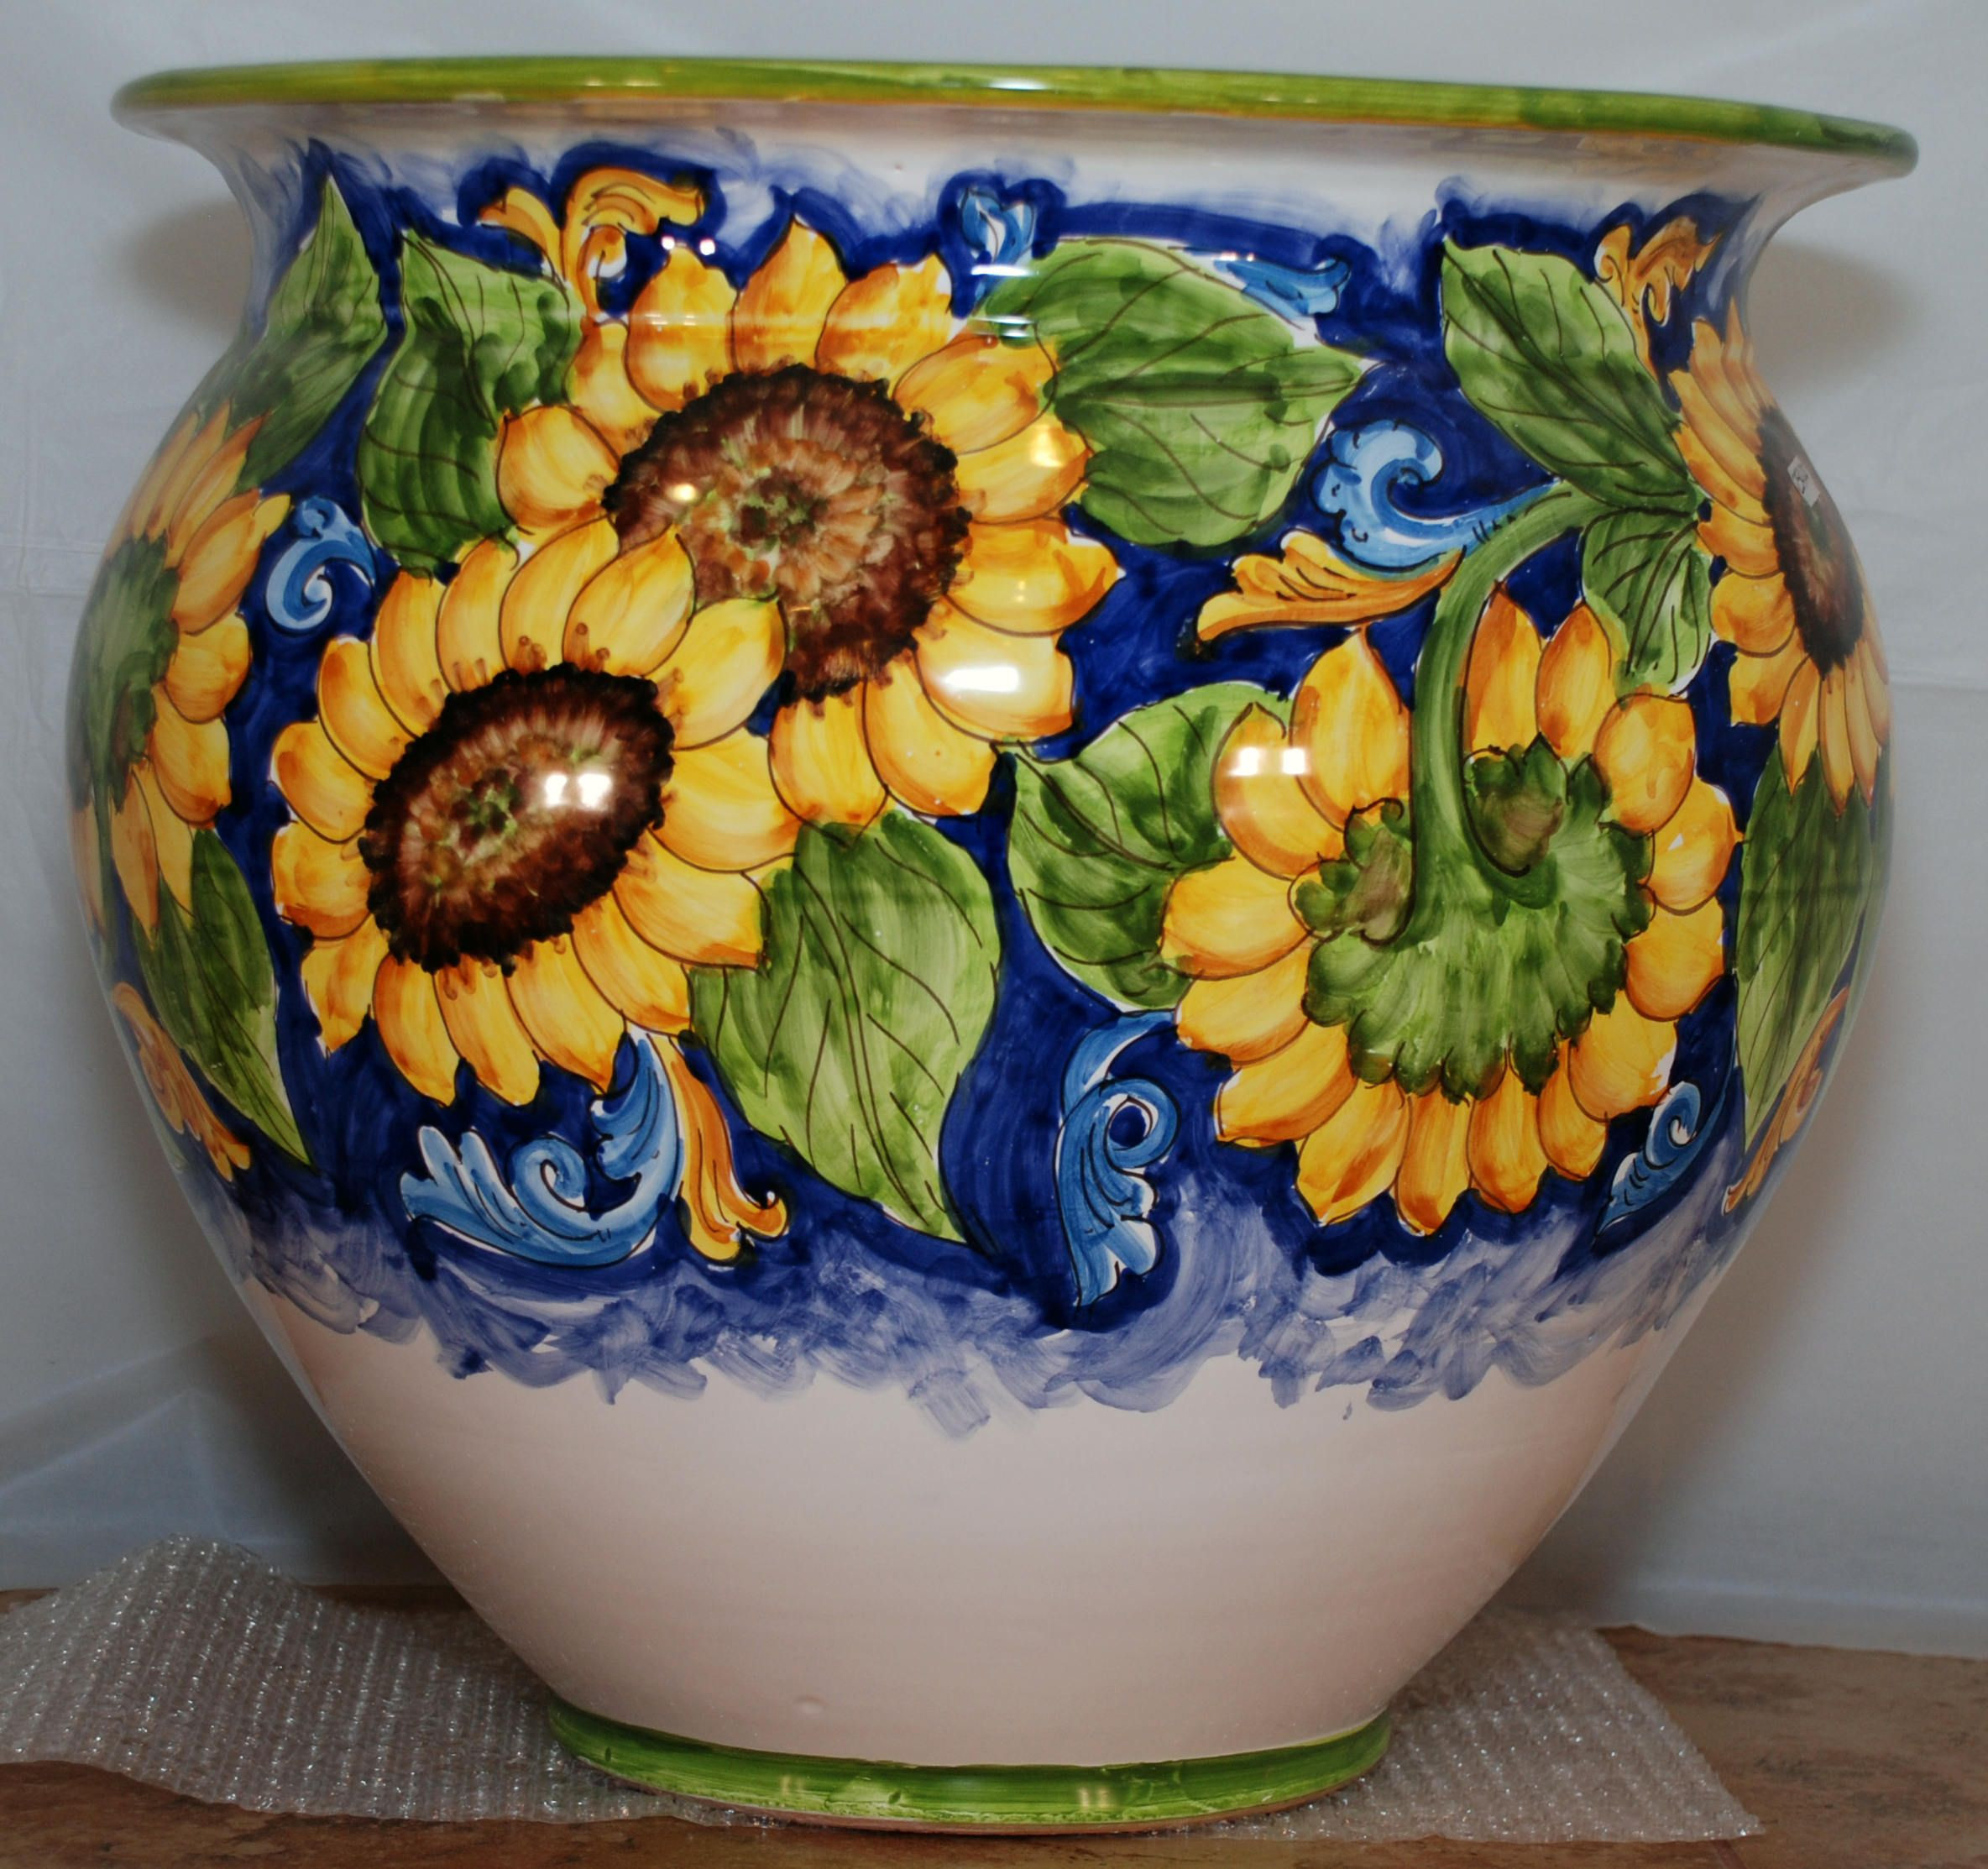 Large Mexican Pottery Vases Of Traditional Sicilian Sunflower Decorated Vase In 2018 Pottery within Traditional Sicilian Sunflower Decorated Vase by Aputiadure On Etsy